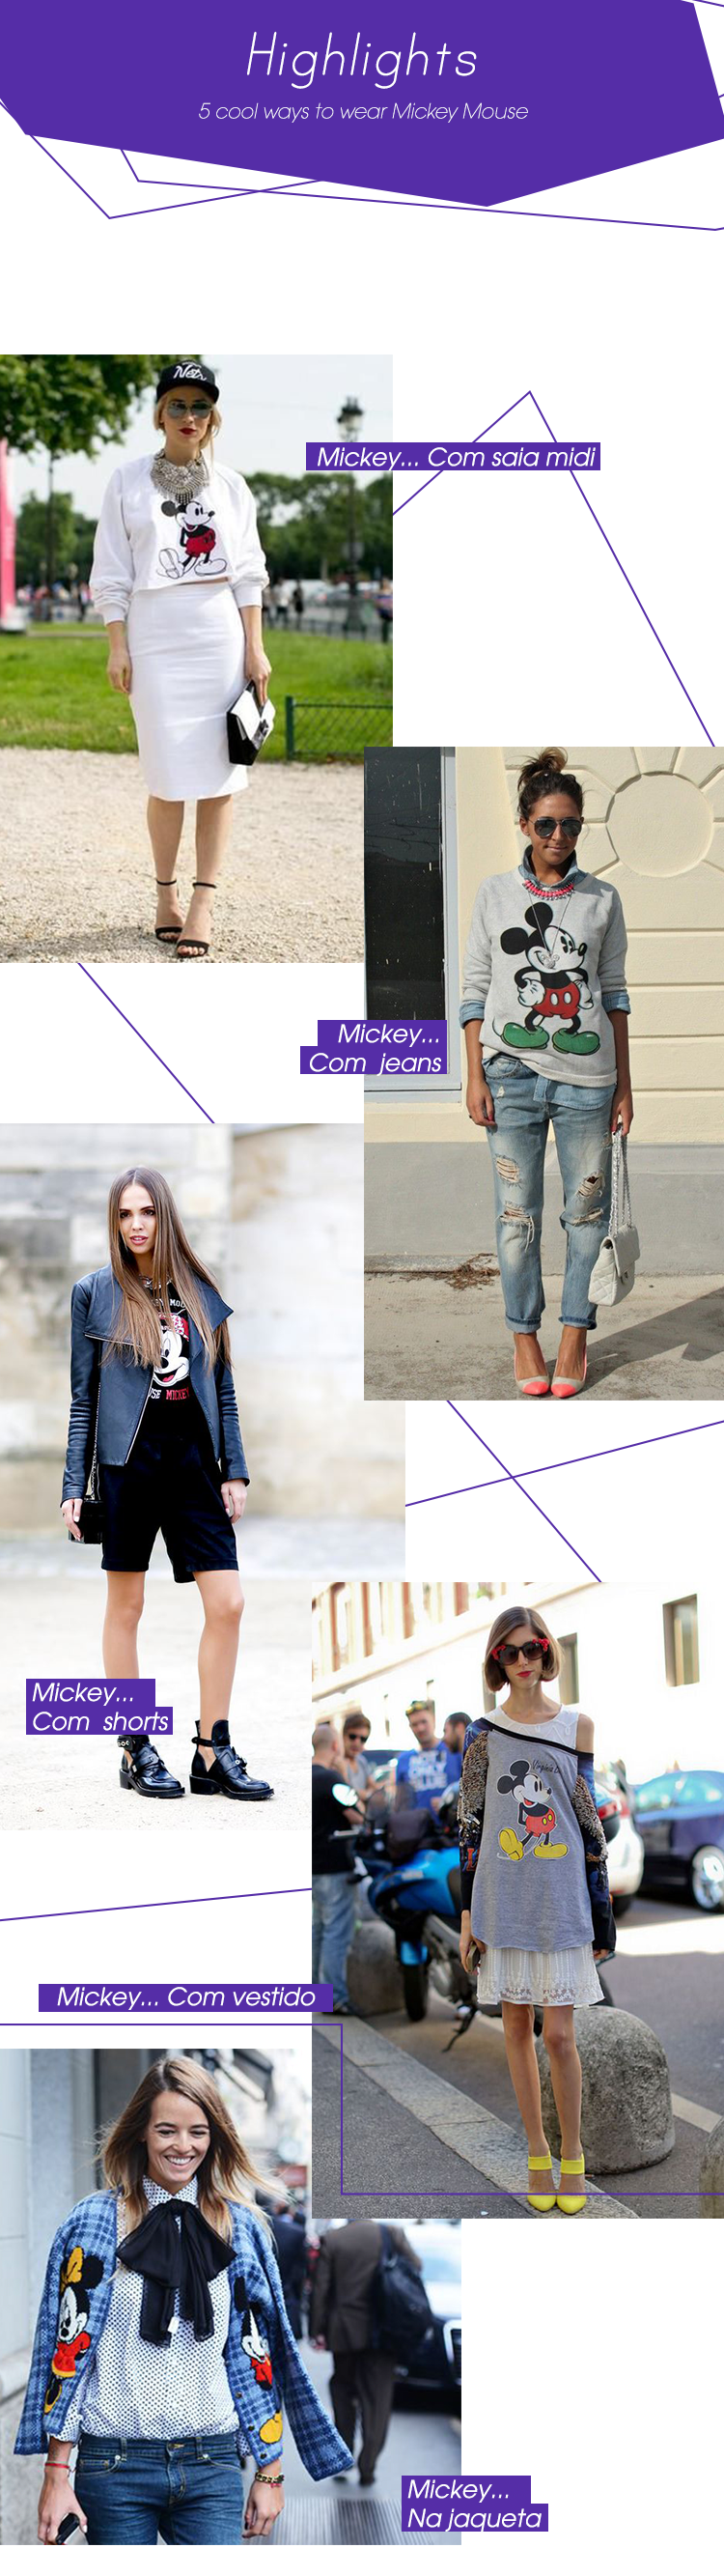 5-cool-ways-to-wear-Mickey-Mouse_01